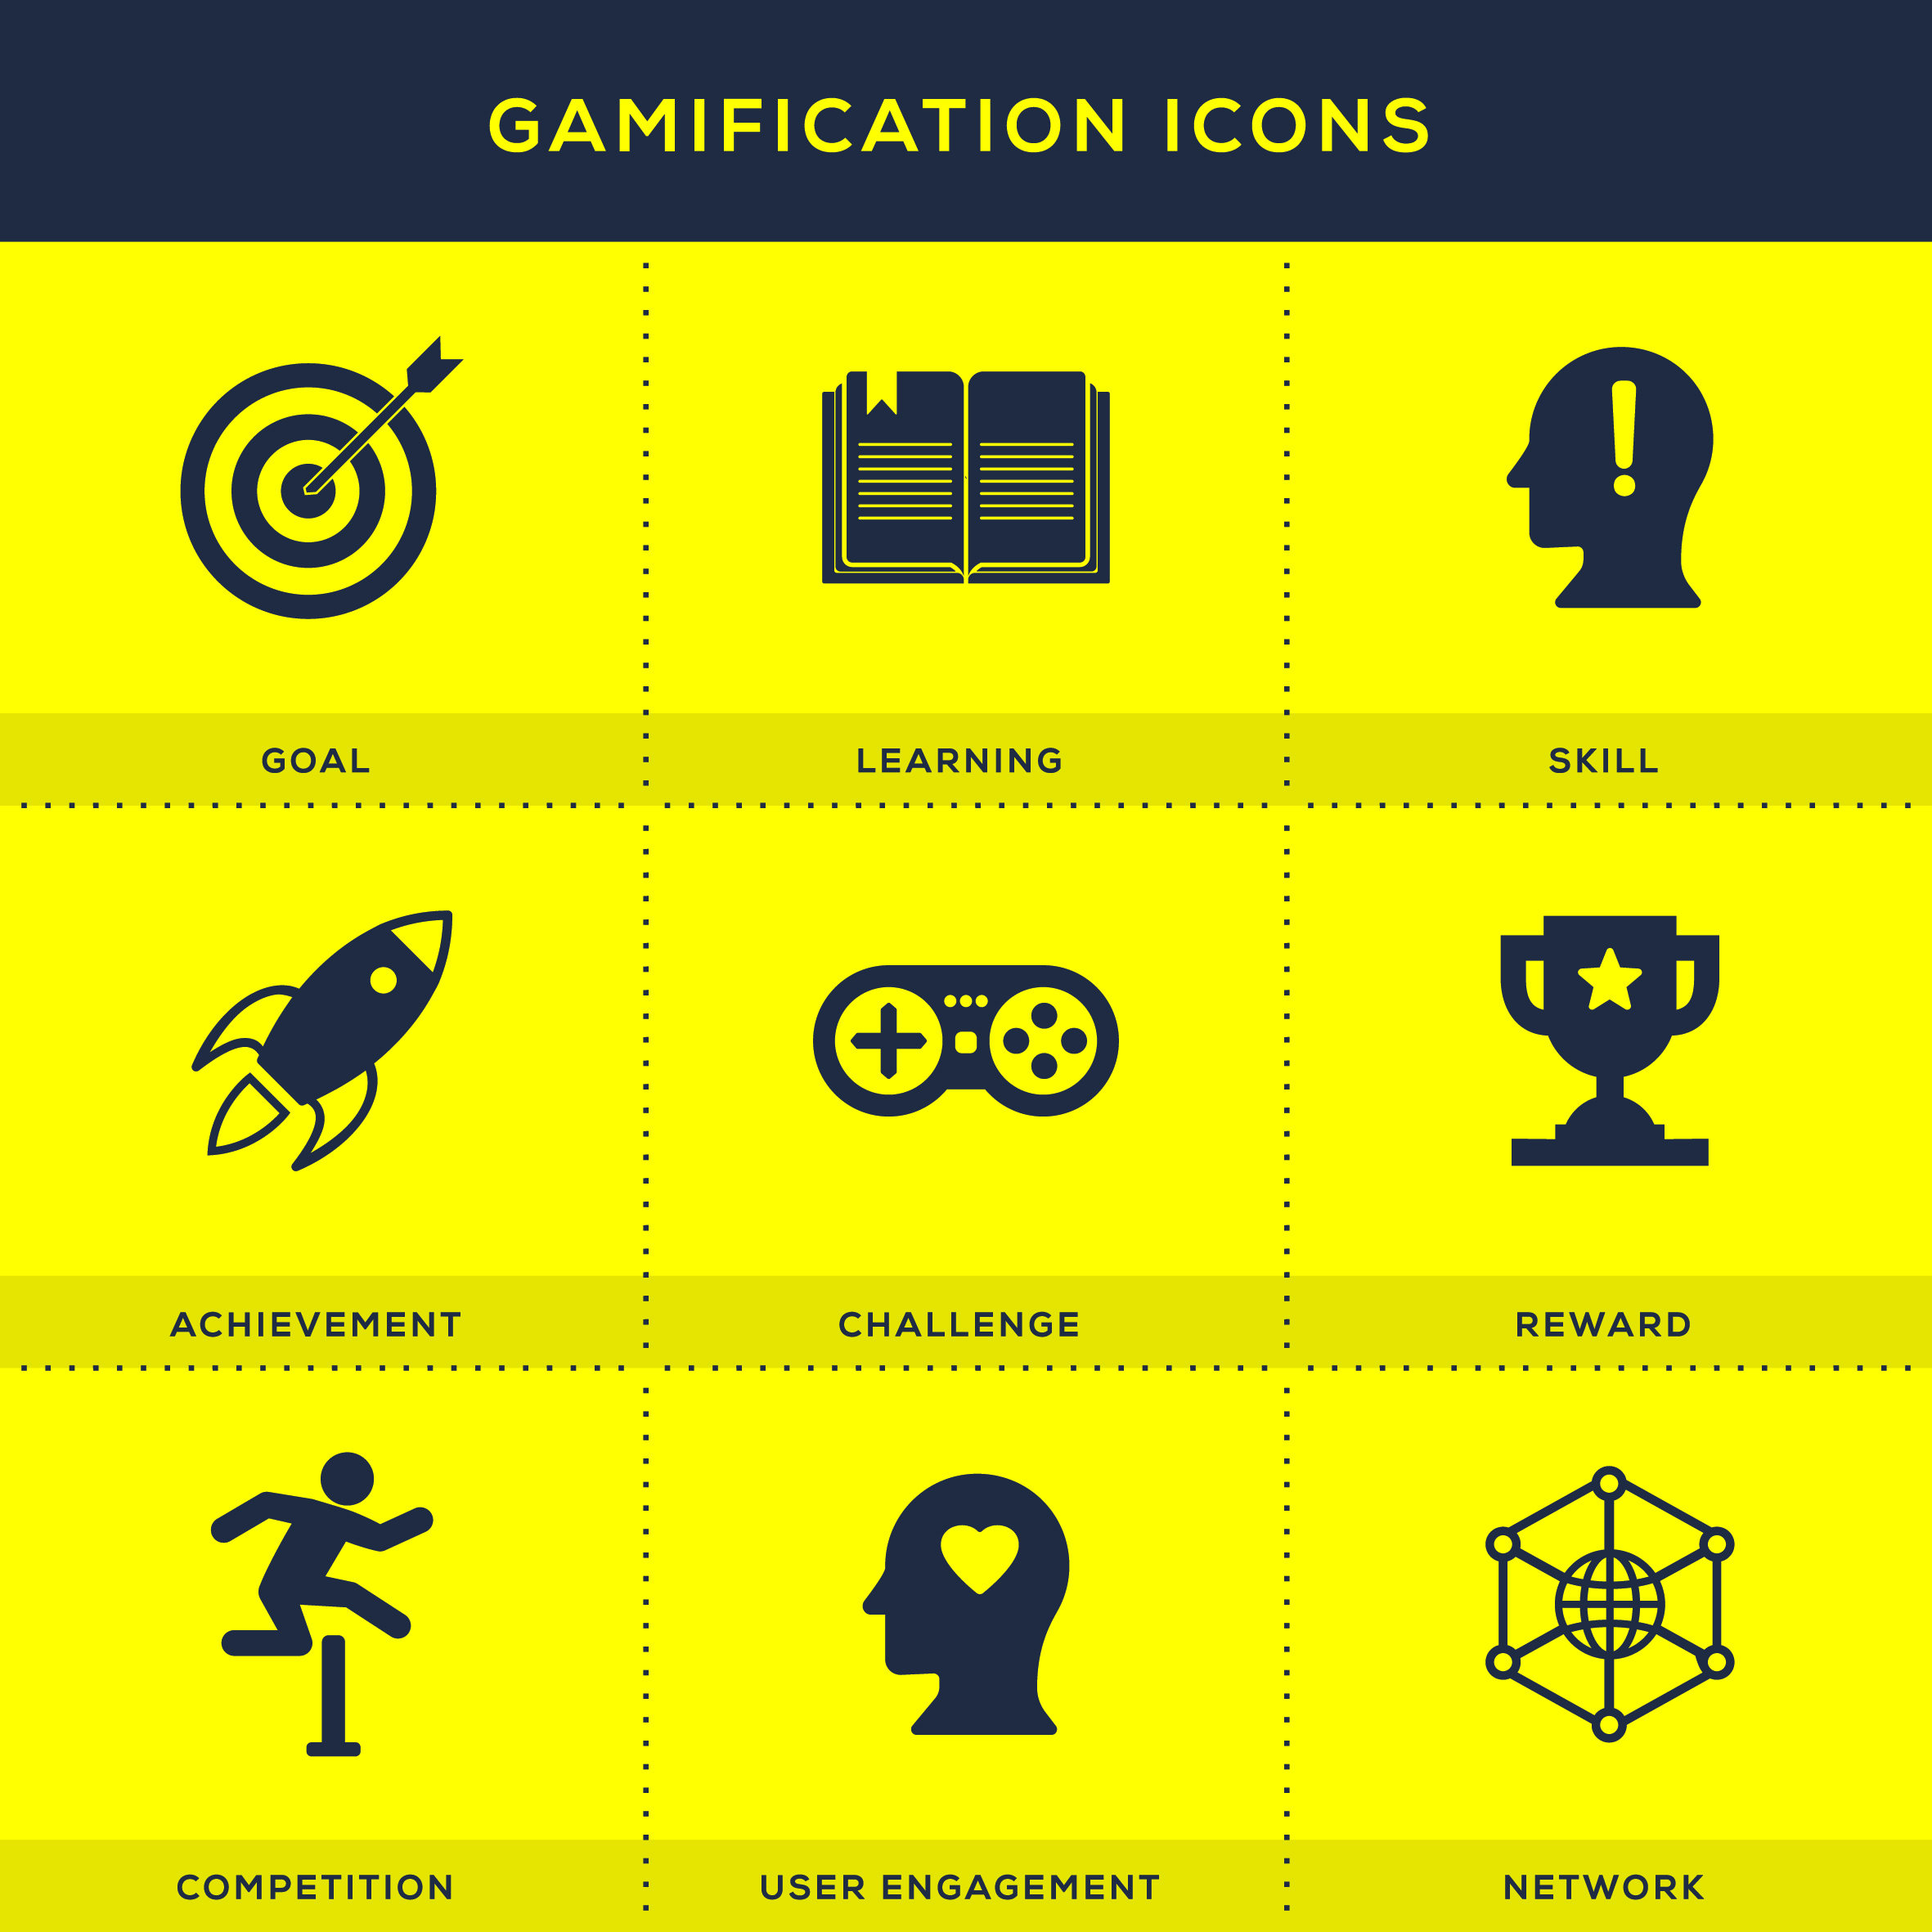 Gamification icons.jpg